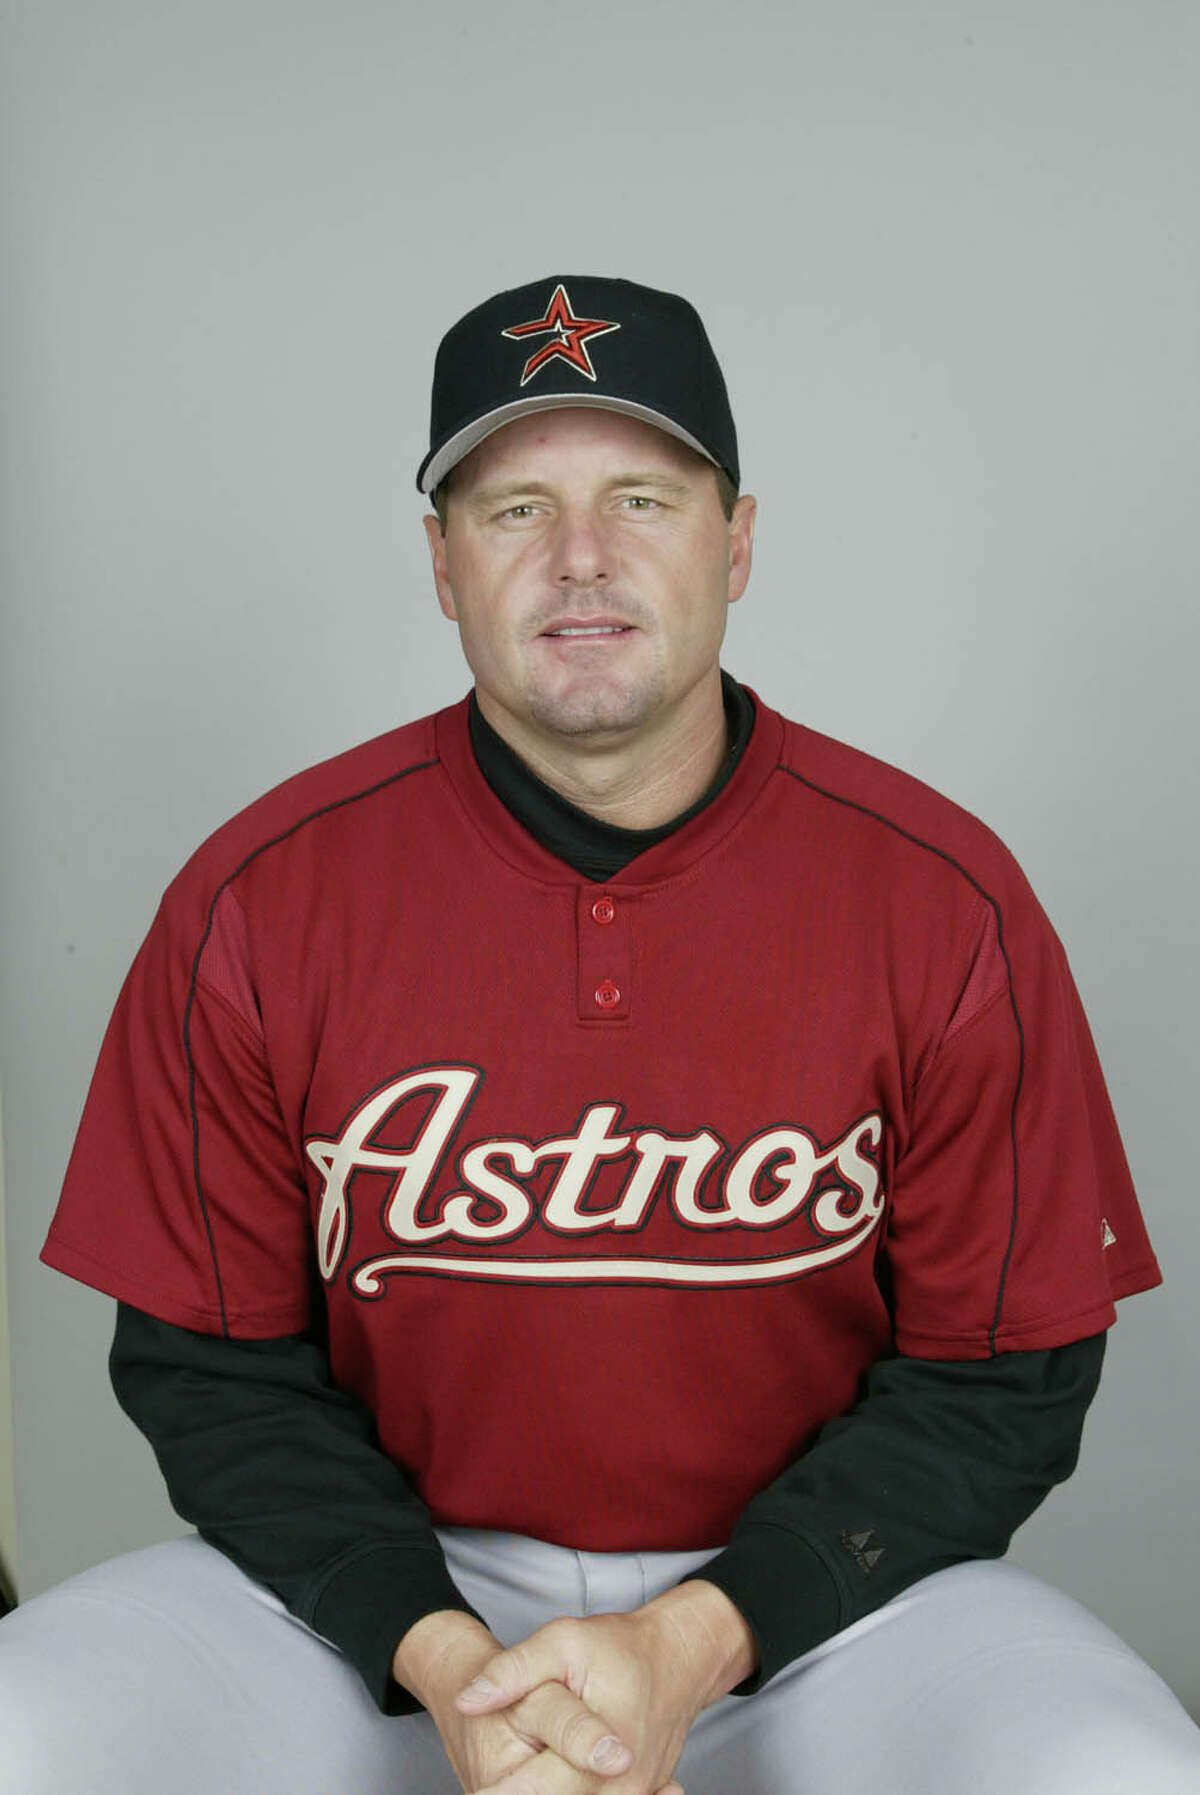 KISSIMMEE, FL - FEBRUARY 26: Roger Clemens of the Houston Astros on February 26, 2004 in Kissimmee, Florida. (Photo by MLB Photos)